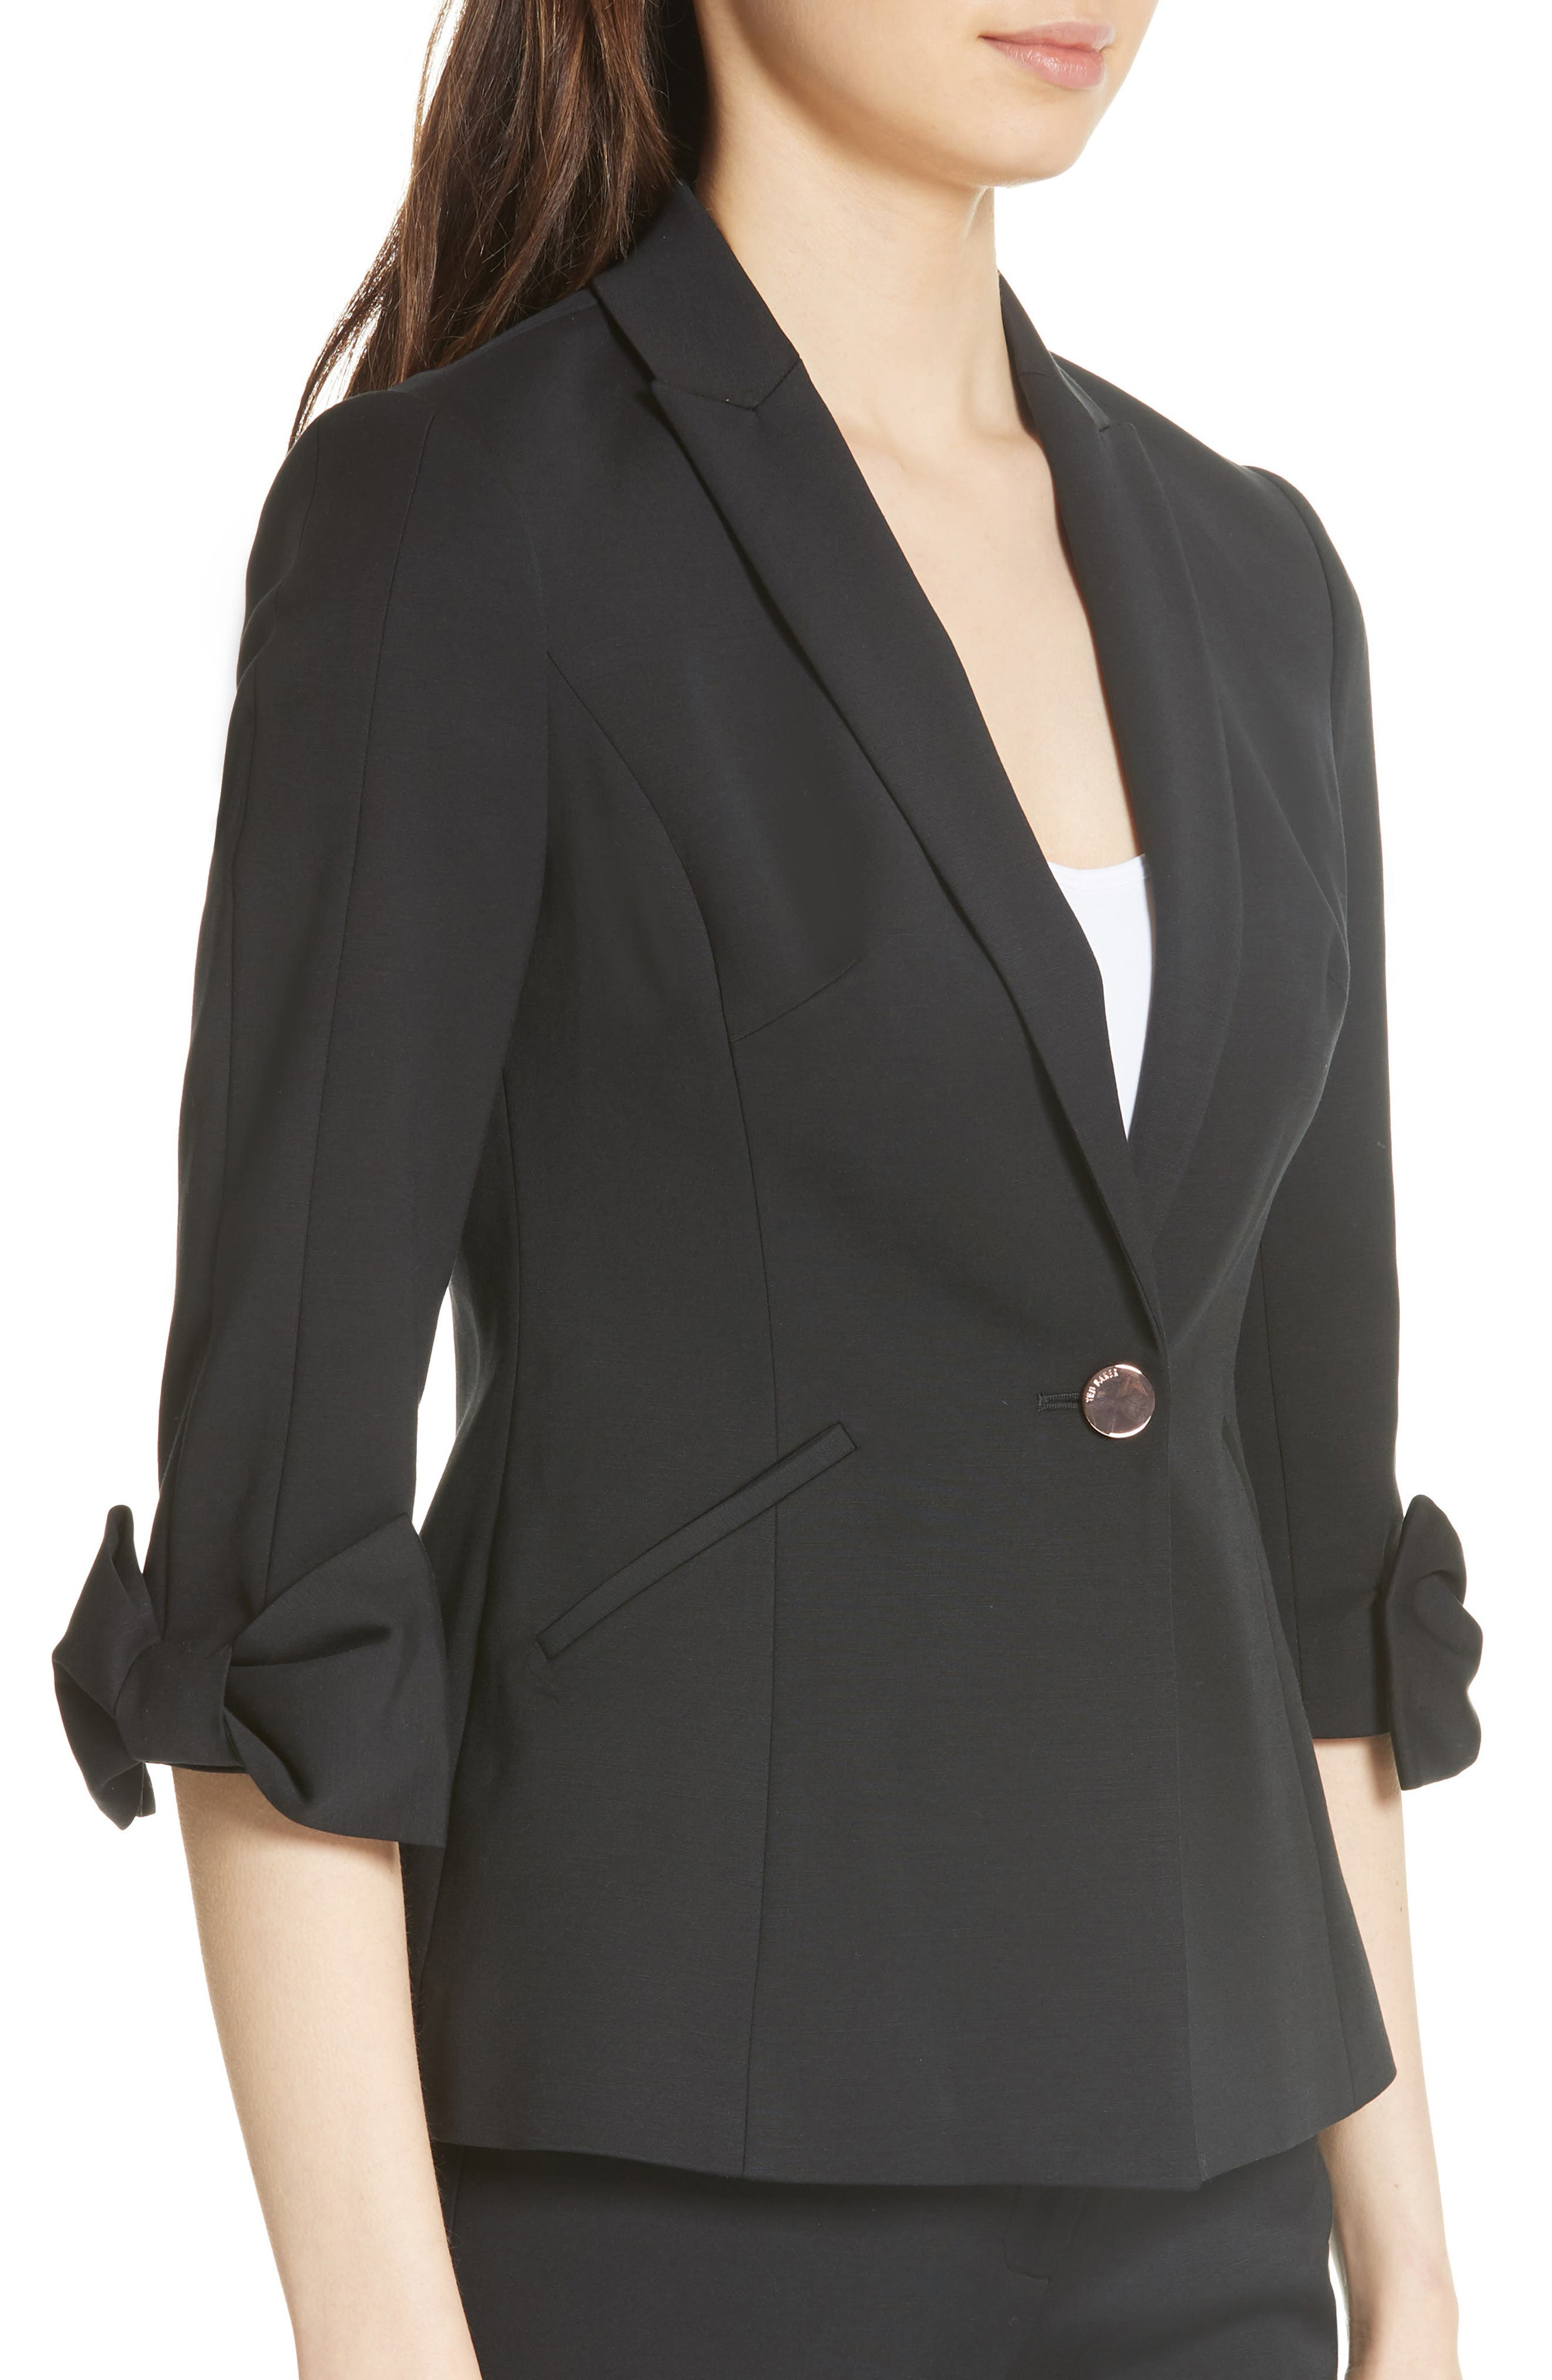 Toply Bow Cuff Jacket,                             Alternate thumbnail 4, color,                             BLACK